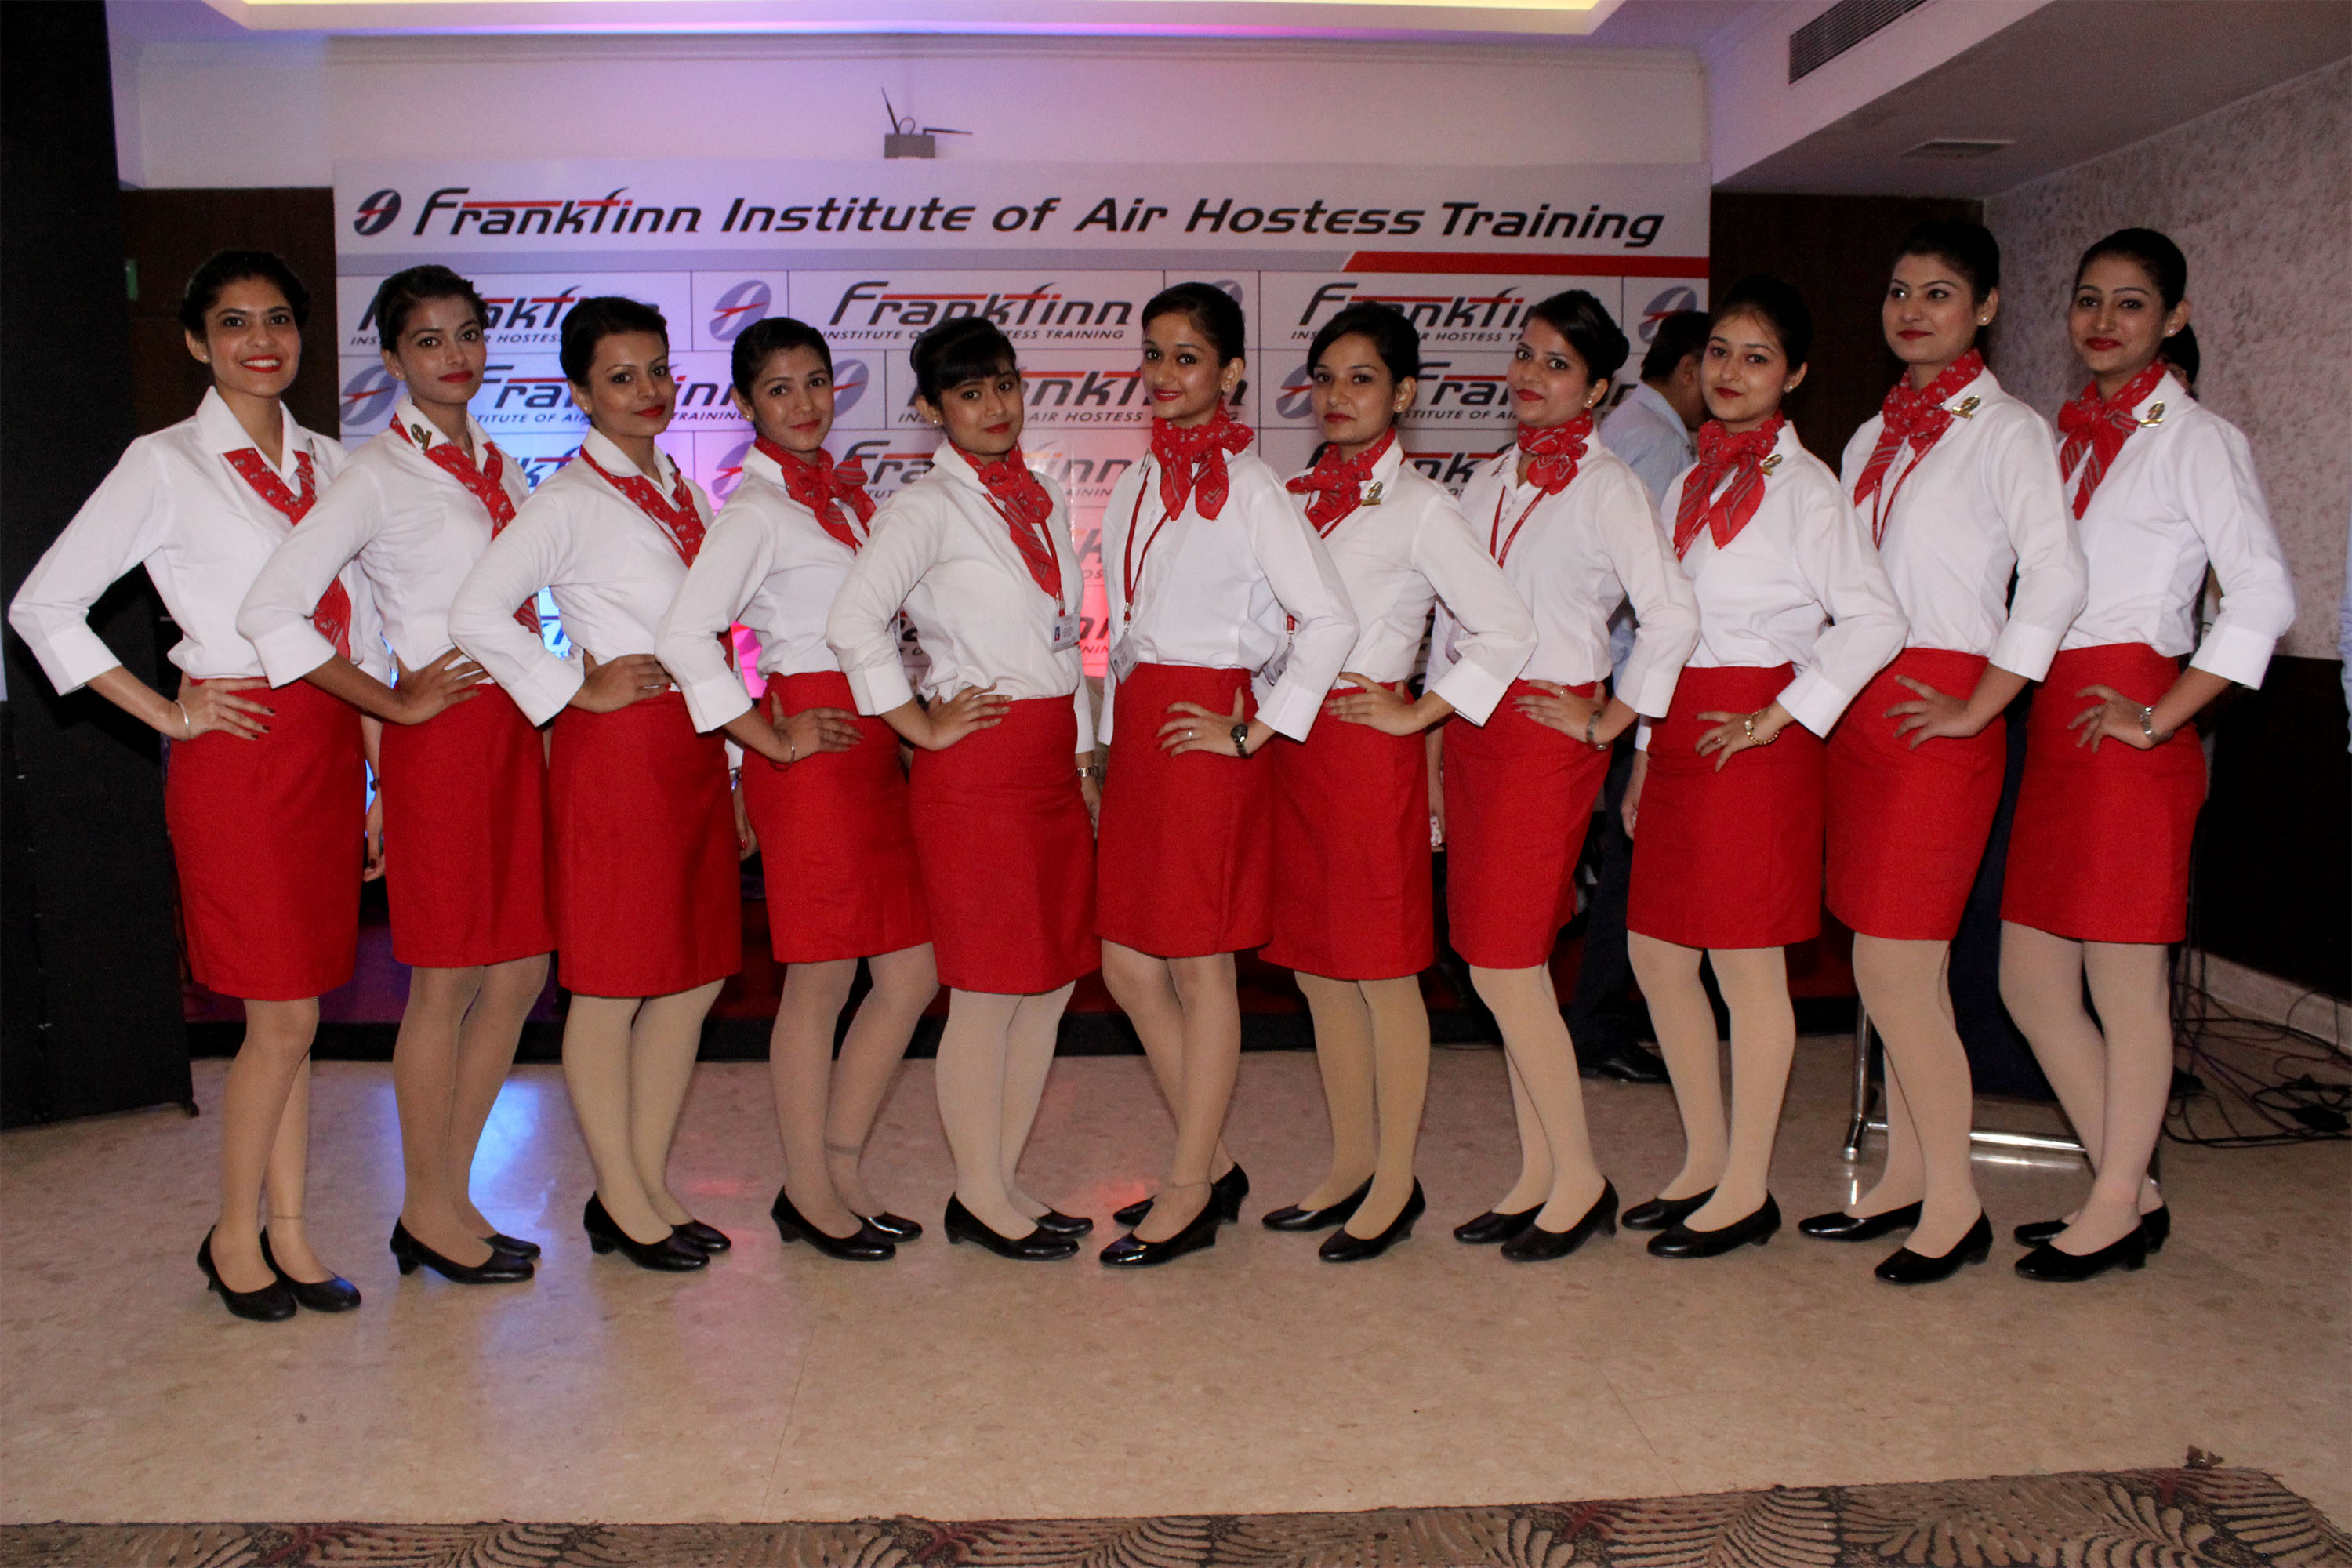 aim to become an air hostess Air hostess after 10th  10th standardand now i am doing diploma in computer enggafter my diploma is there any chances of becoming an air hostessits my aim.